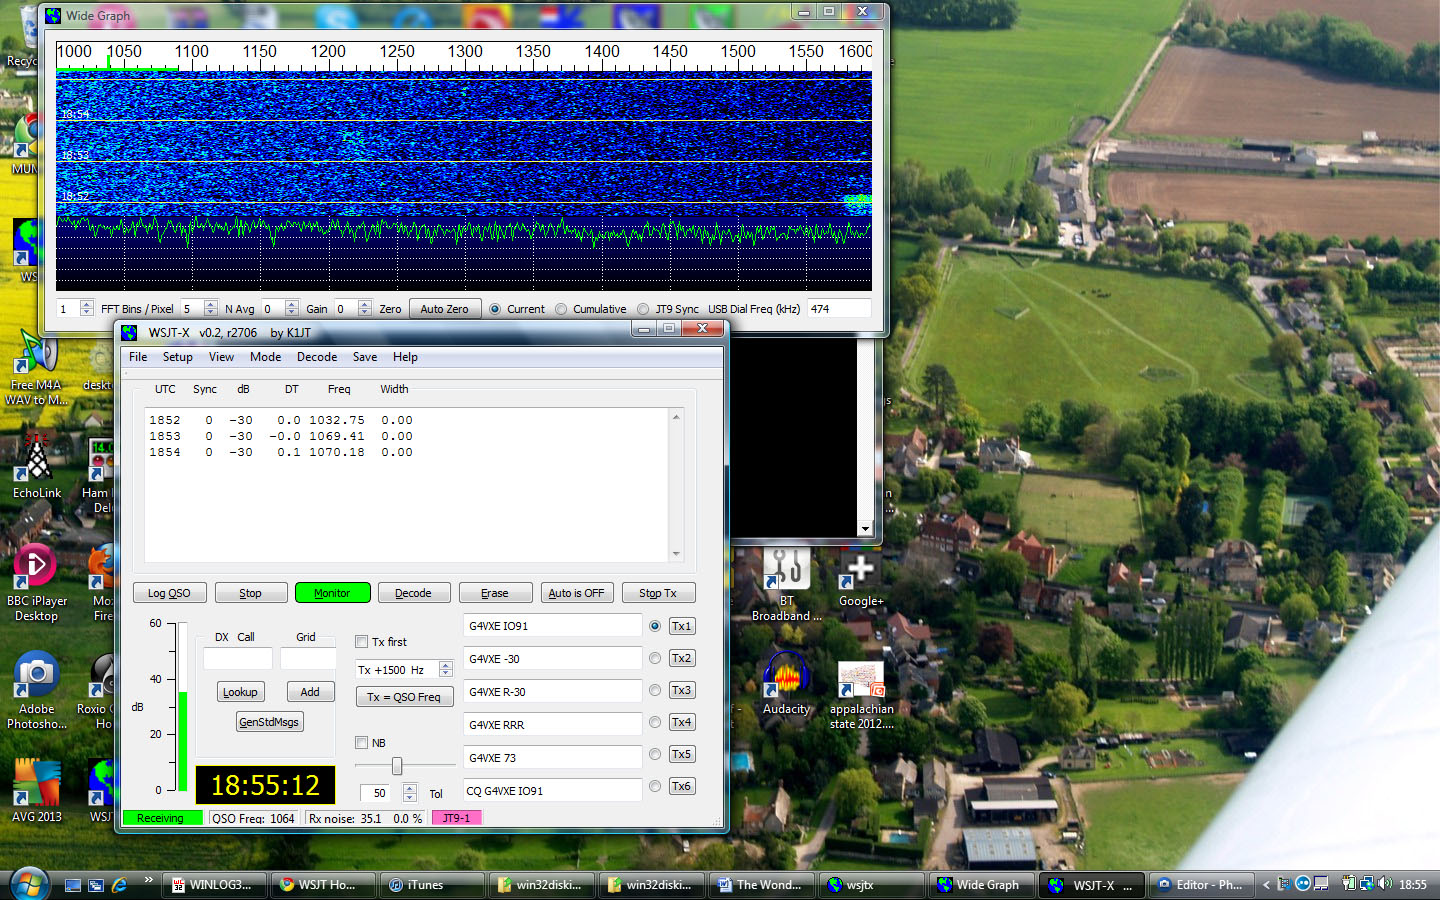 WSJT-X for LF: Now I really will have to look at a top band